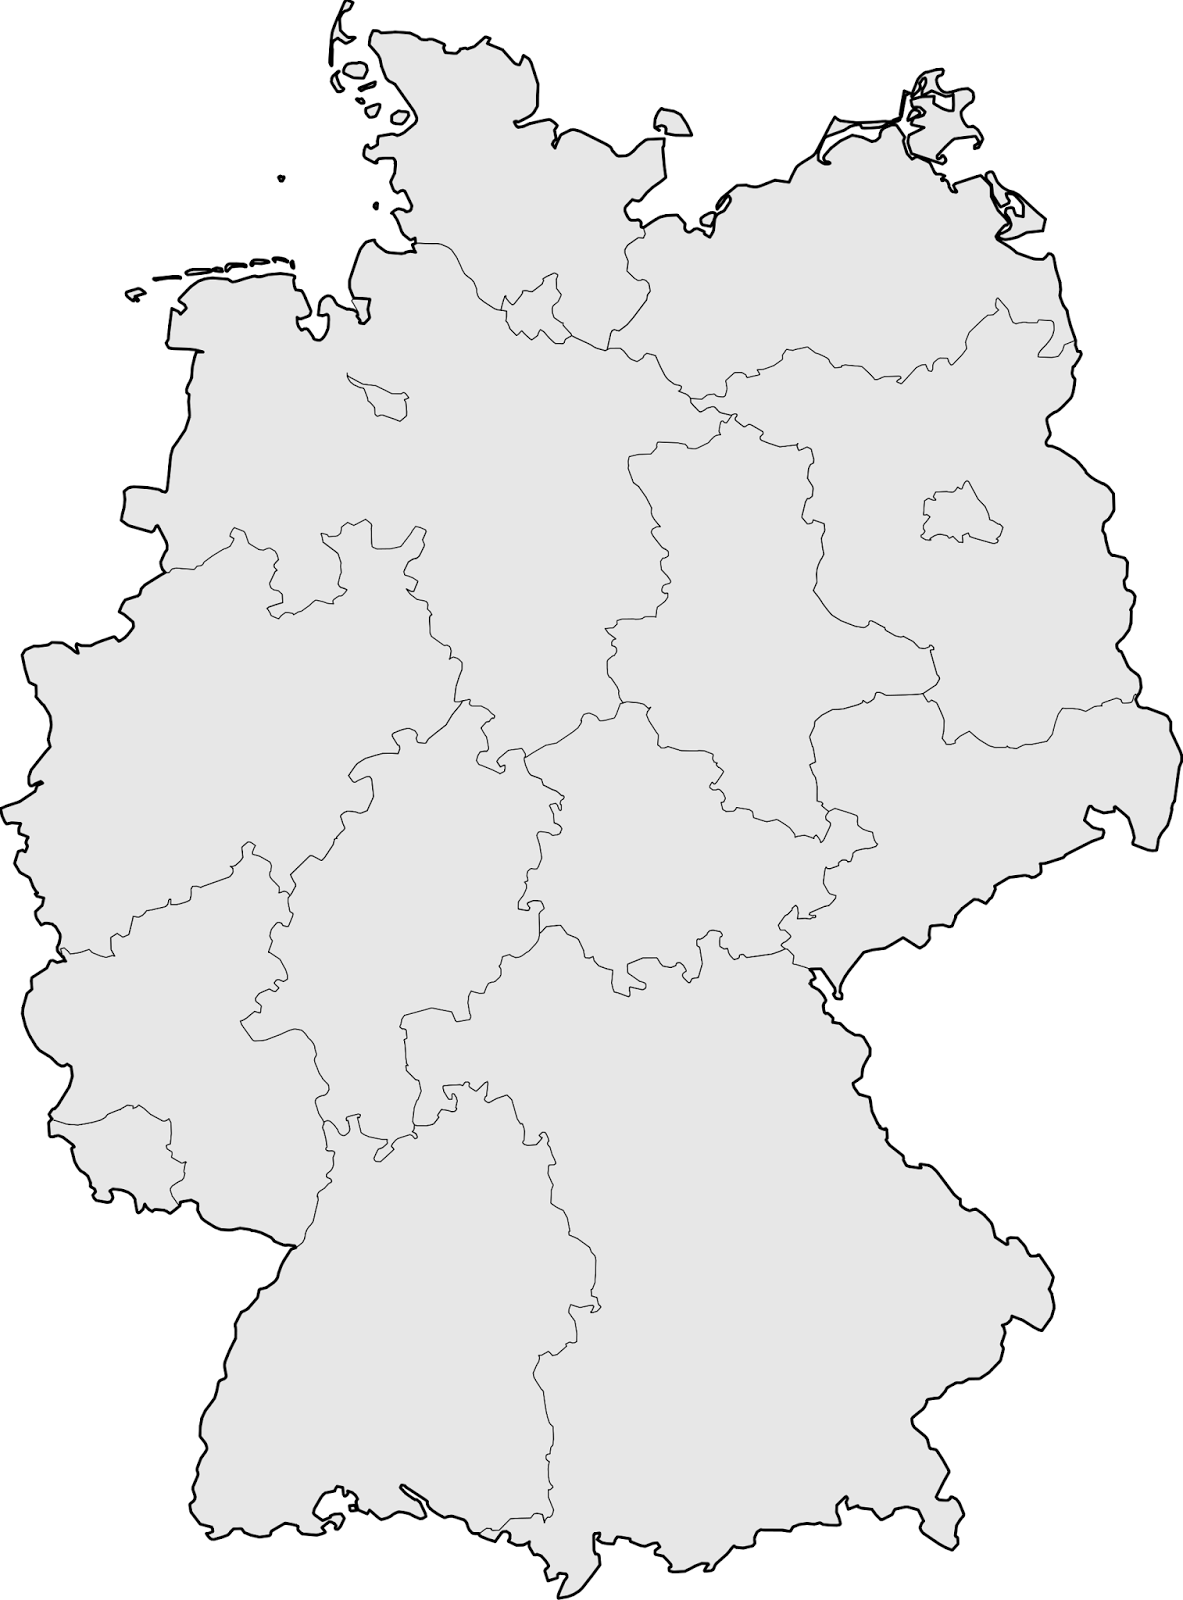 Quelle: http://mapsof.net/map/germany-blank-map#.UjRWCD-xV6c